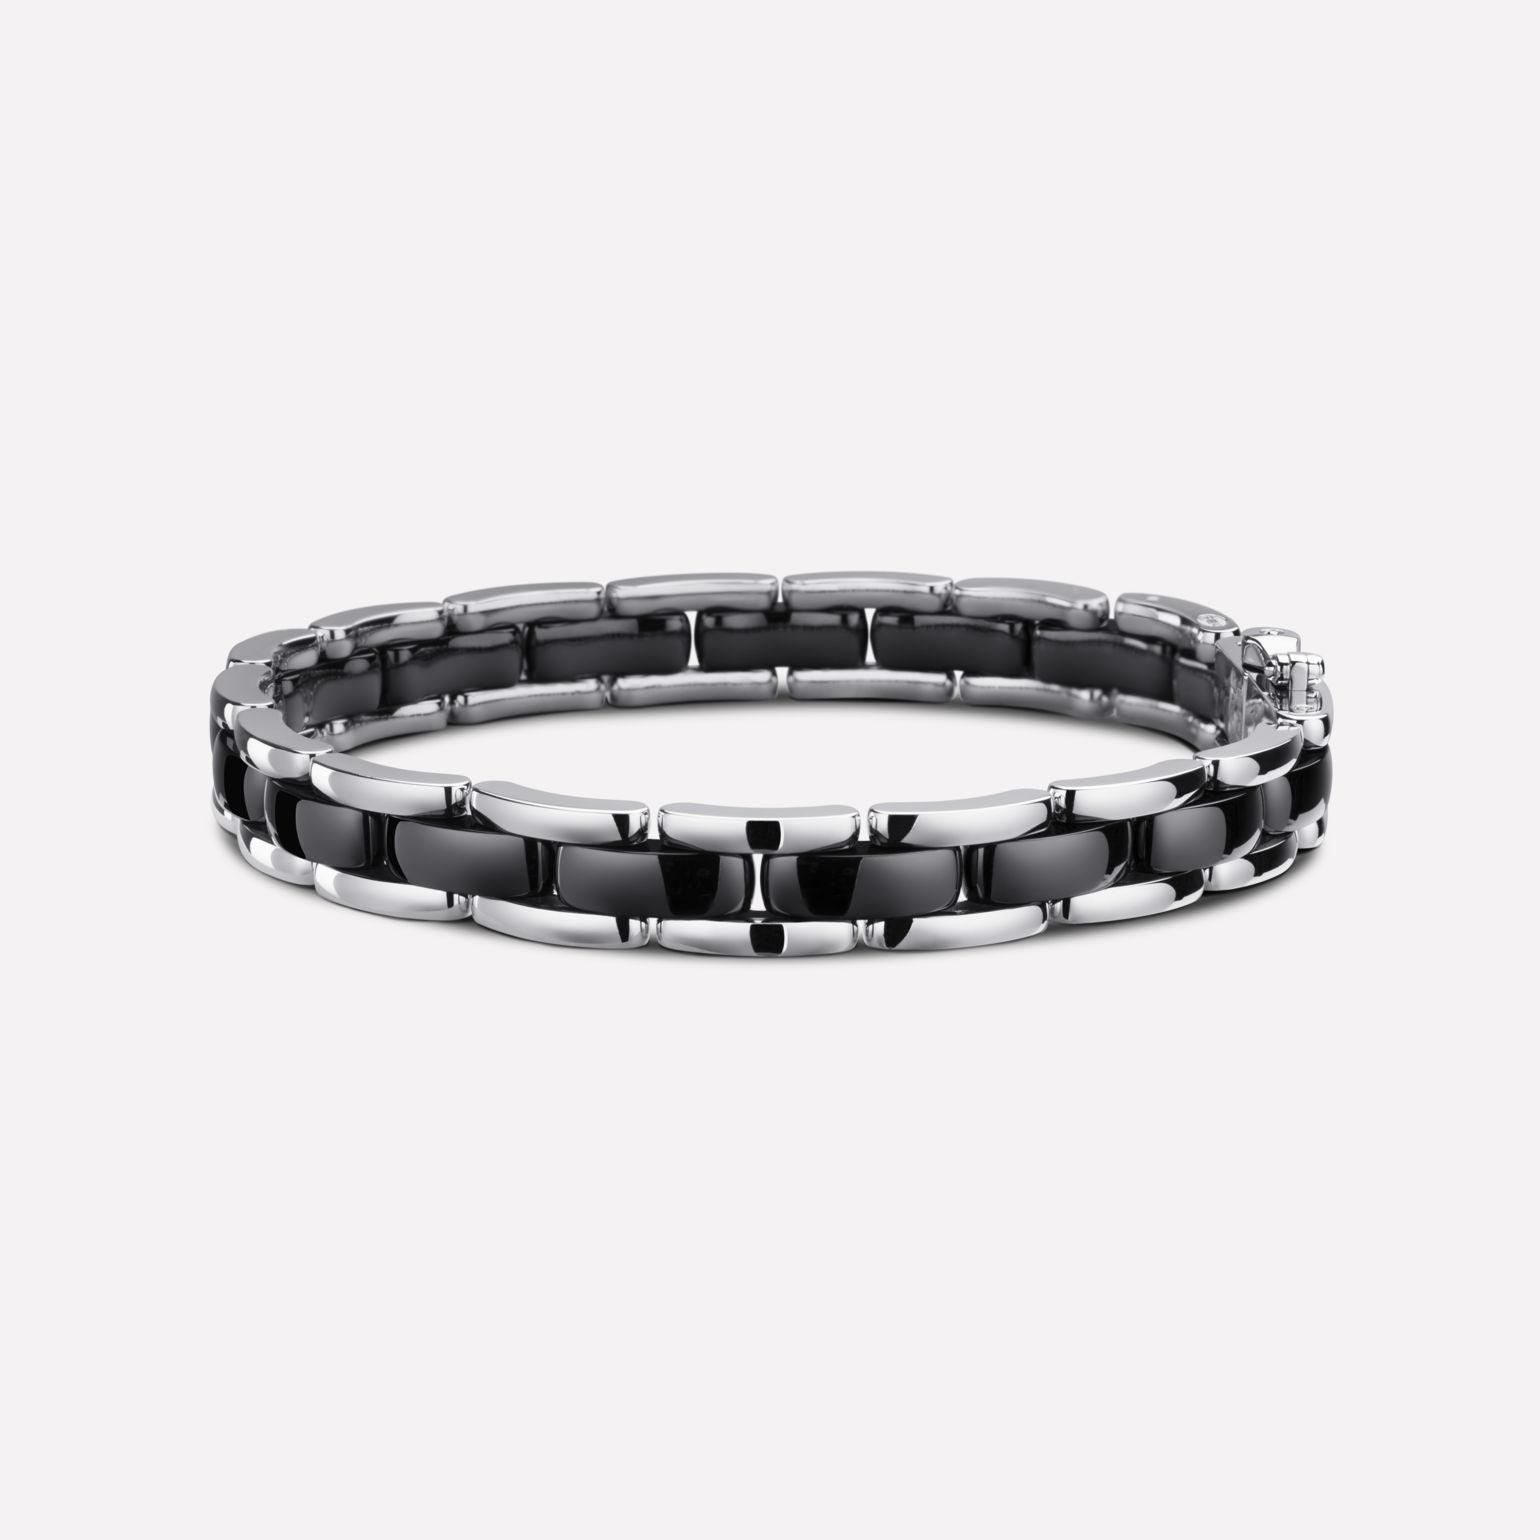 Ultra bracelet Ultra bracelet, in black ceramic and 18K white gold